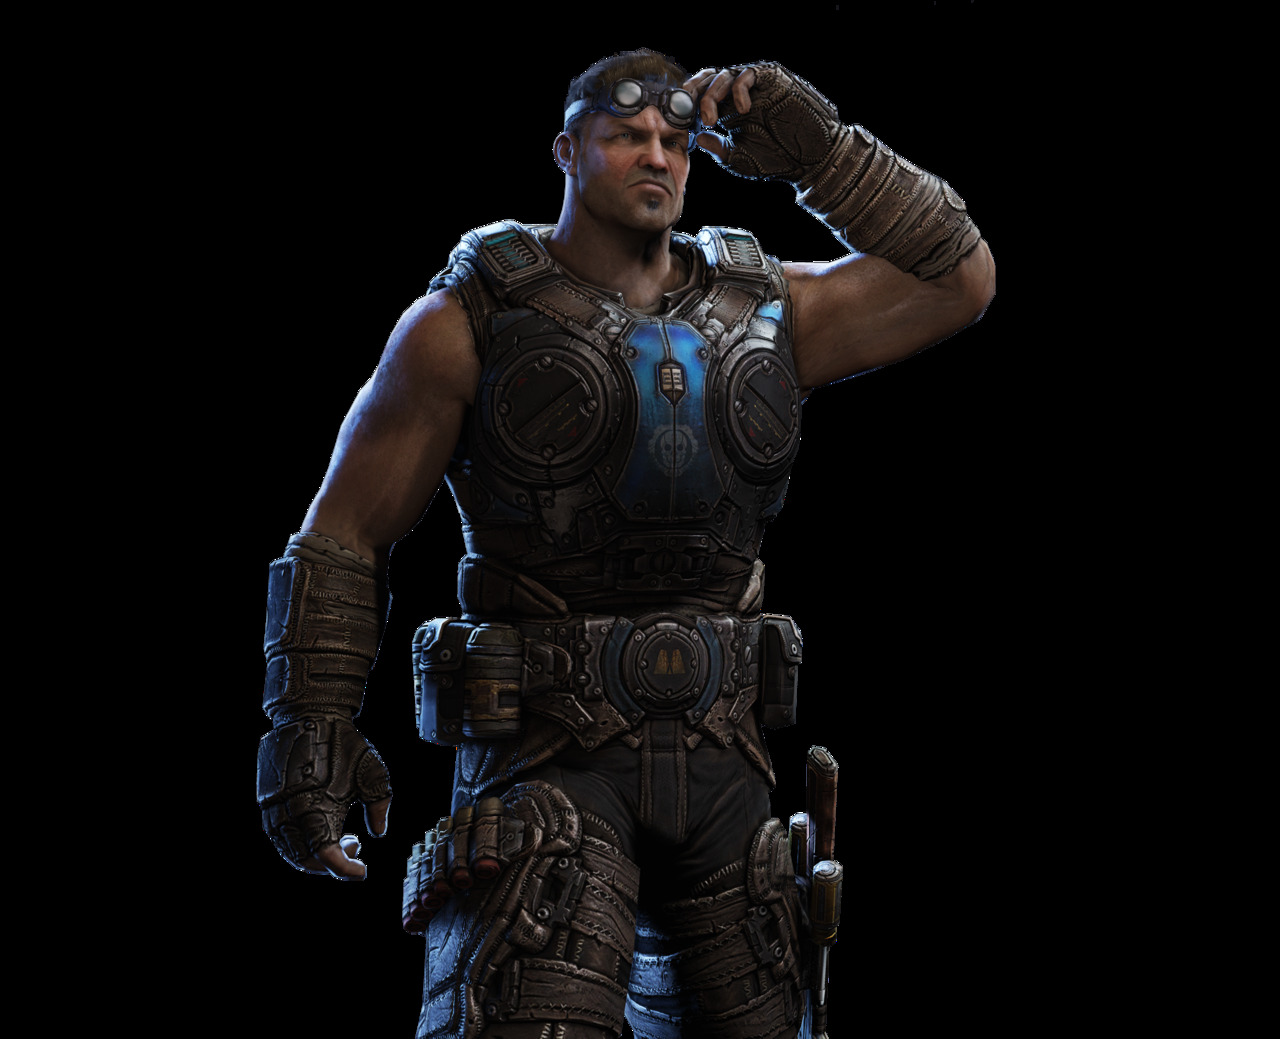 Artworky a screenshoty z Gears of War 3 44668